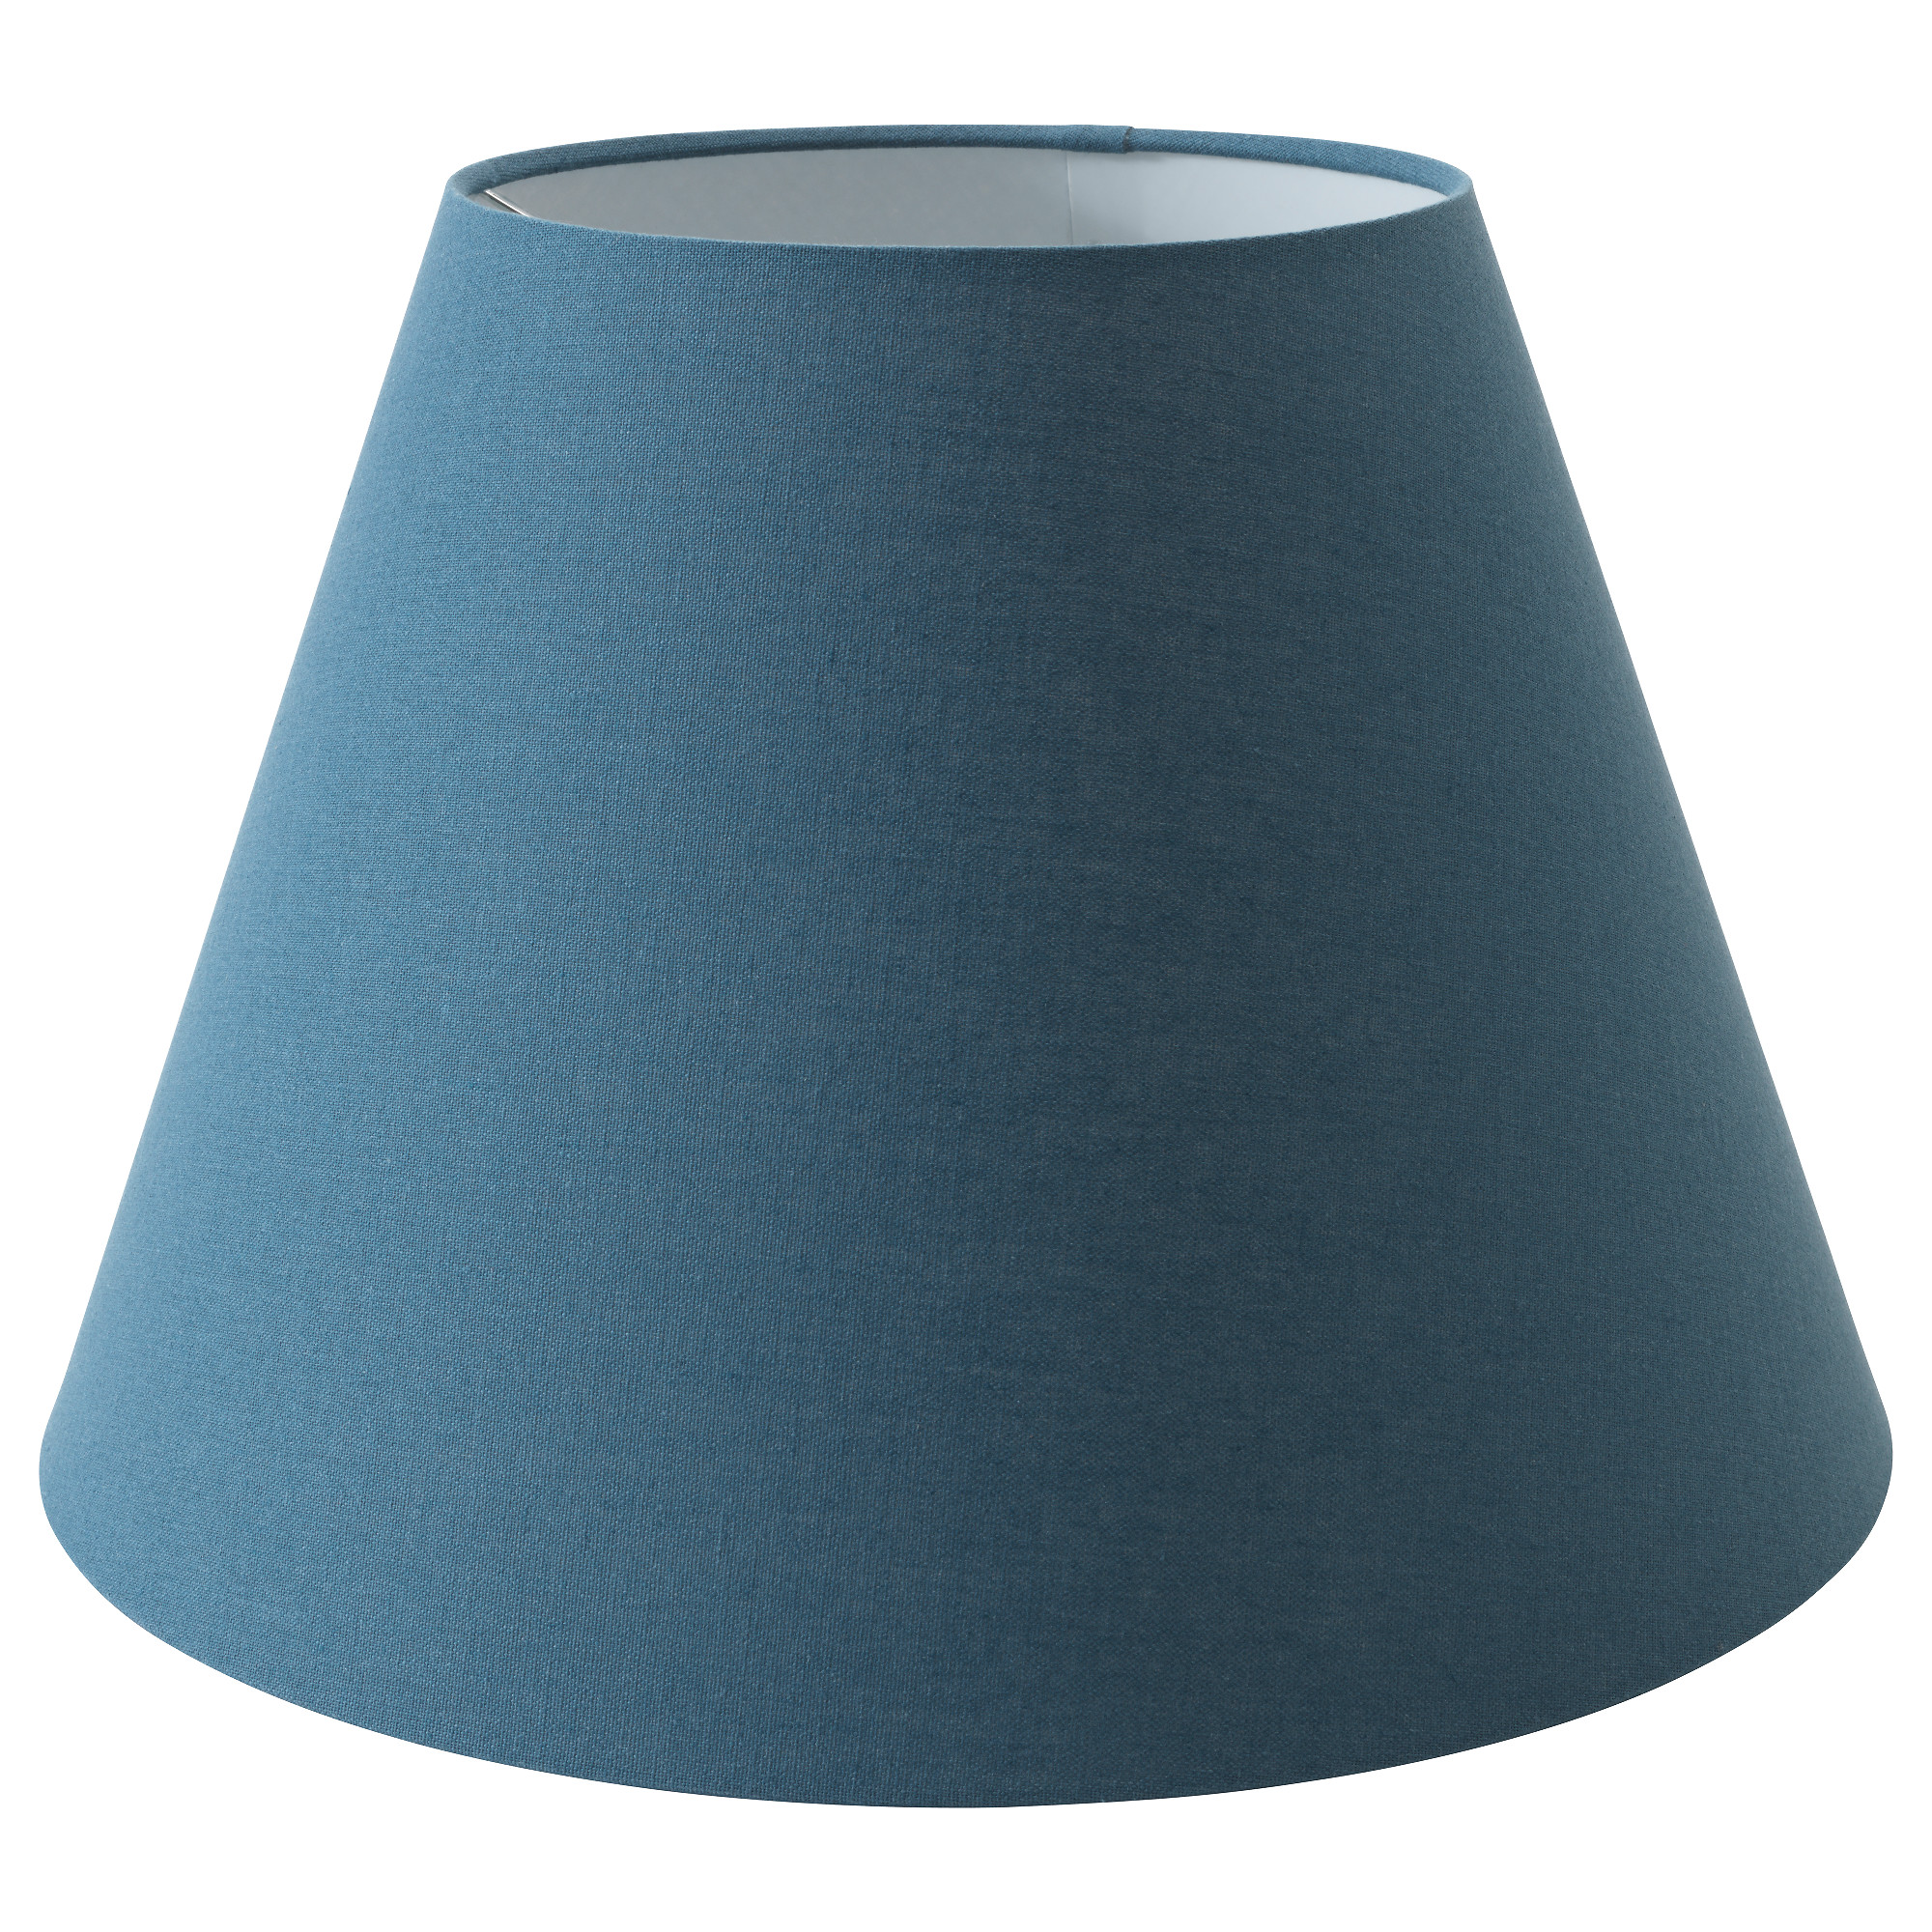 Ollsta lamp shade 17 ikea mozeypictures Image collections